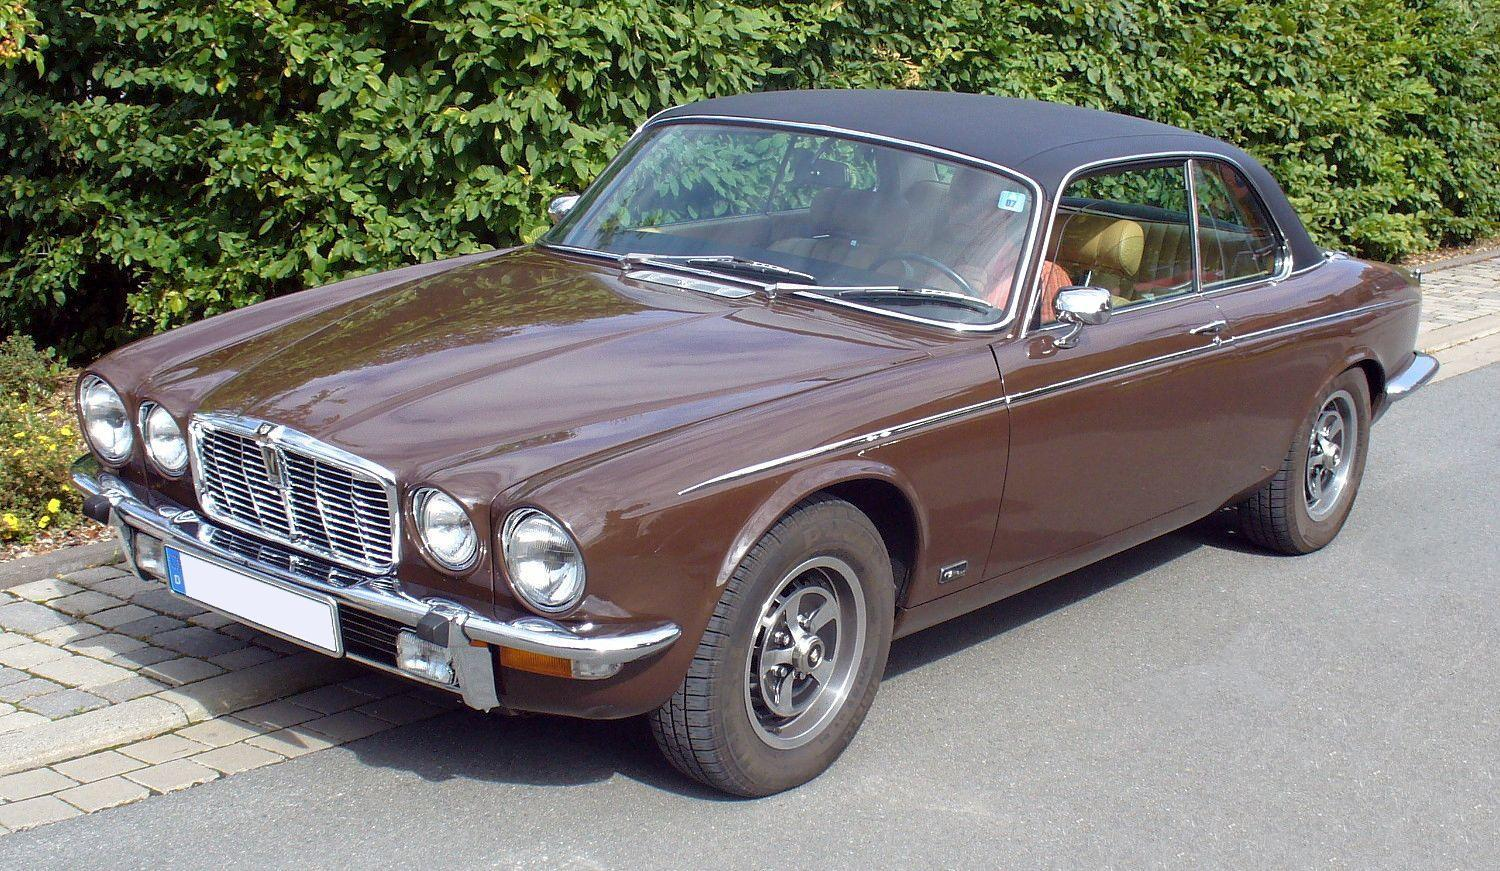 File:Jaguar XJ Series II Coupé 5,3 V12.JPG